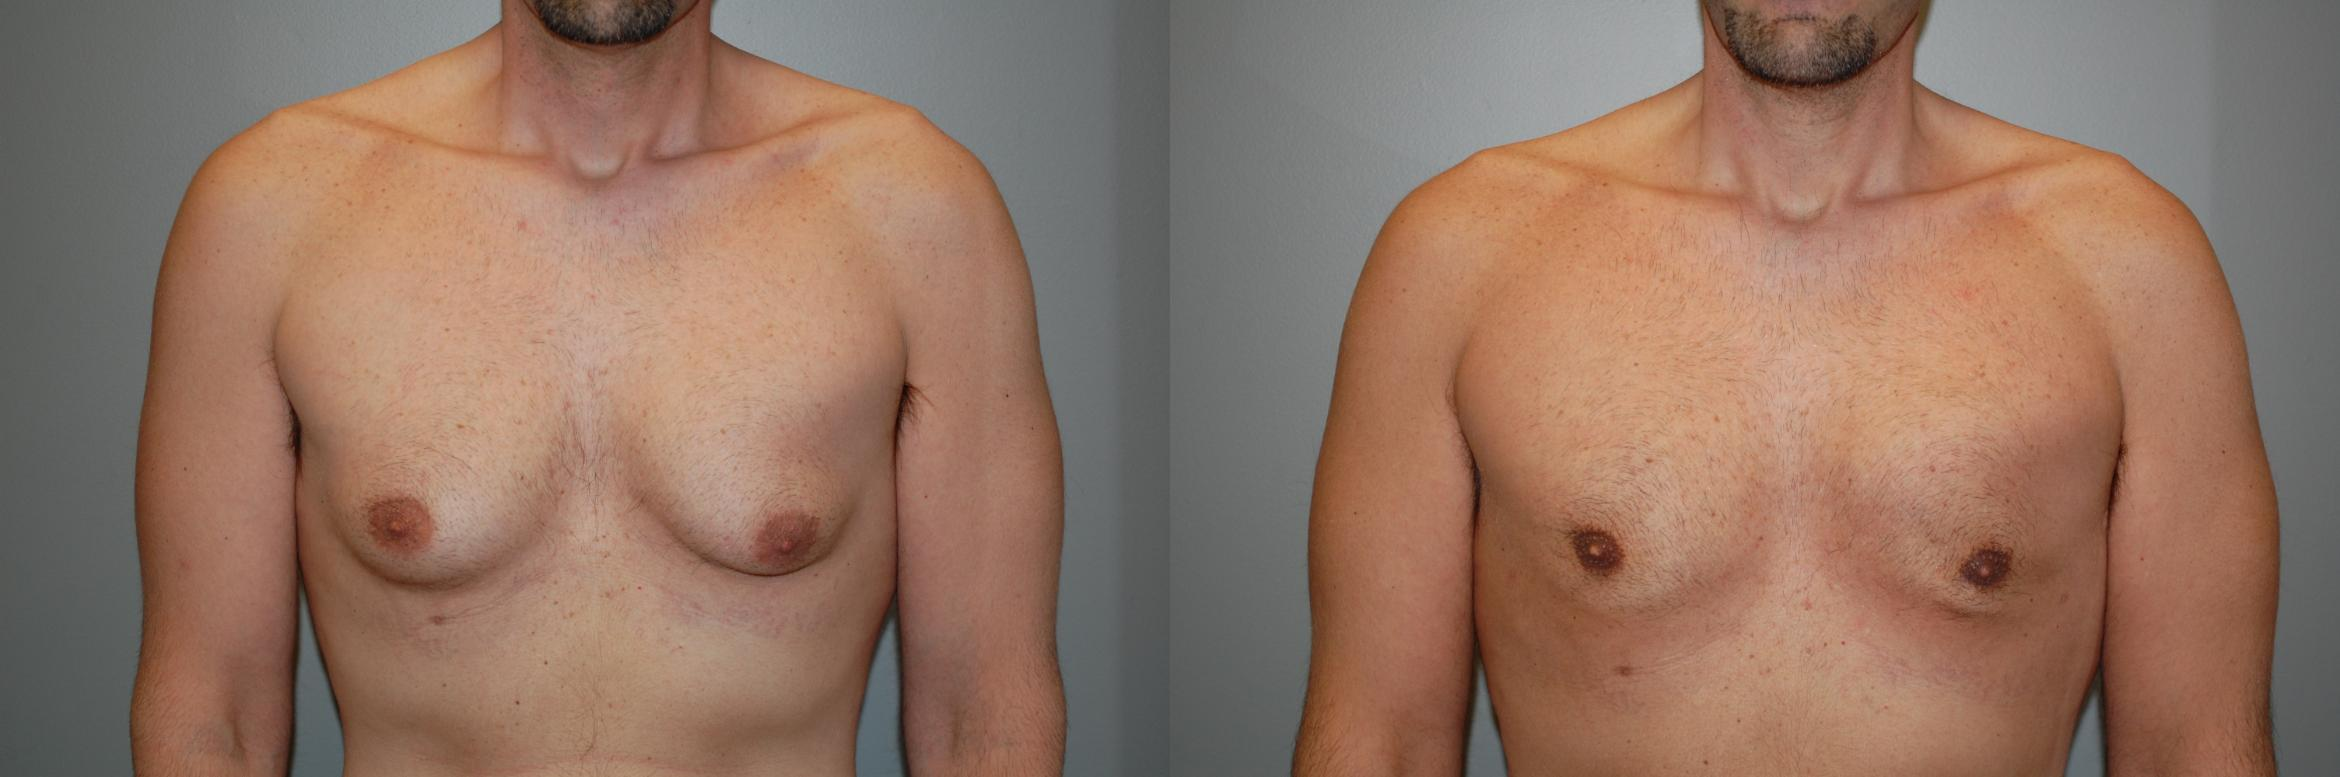 Gynecomastia Before & After Photo | Longmeadow, MA | Aesthetic Plastic & Reconstructive Surgery